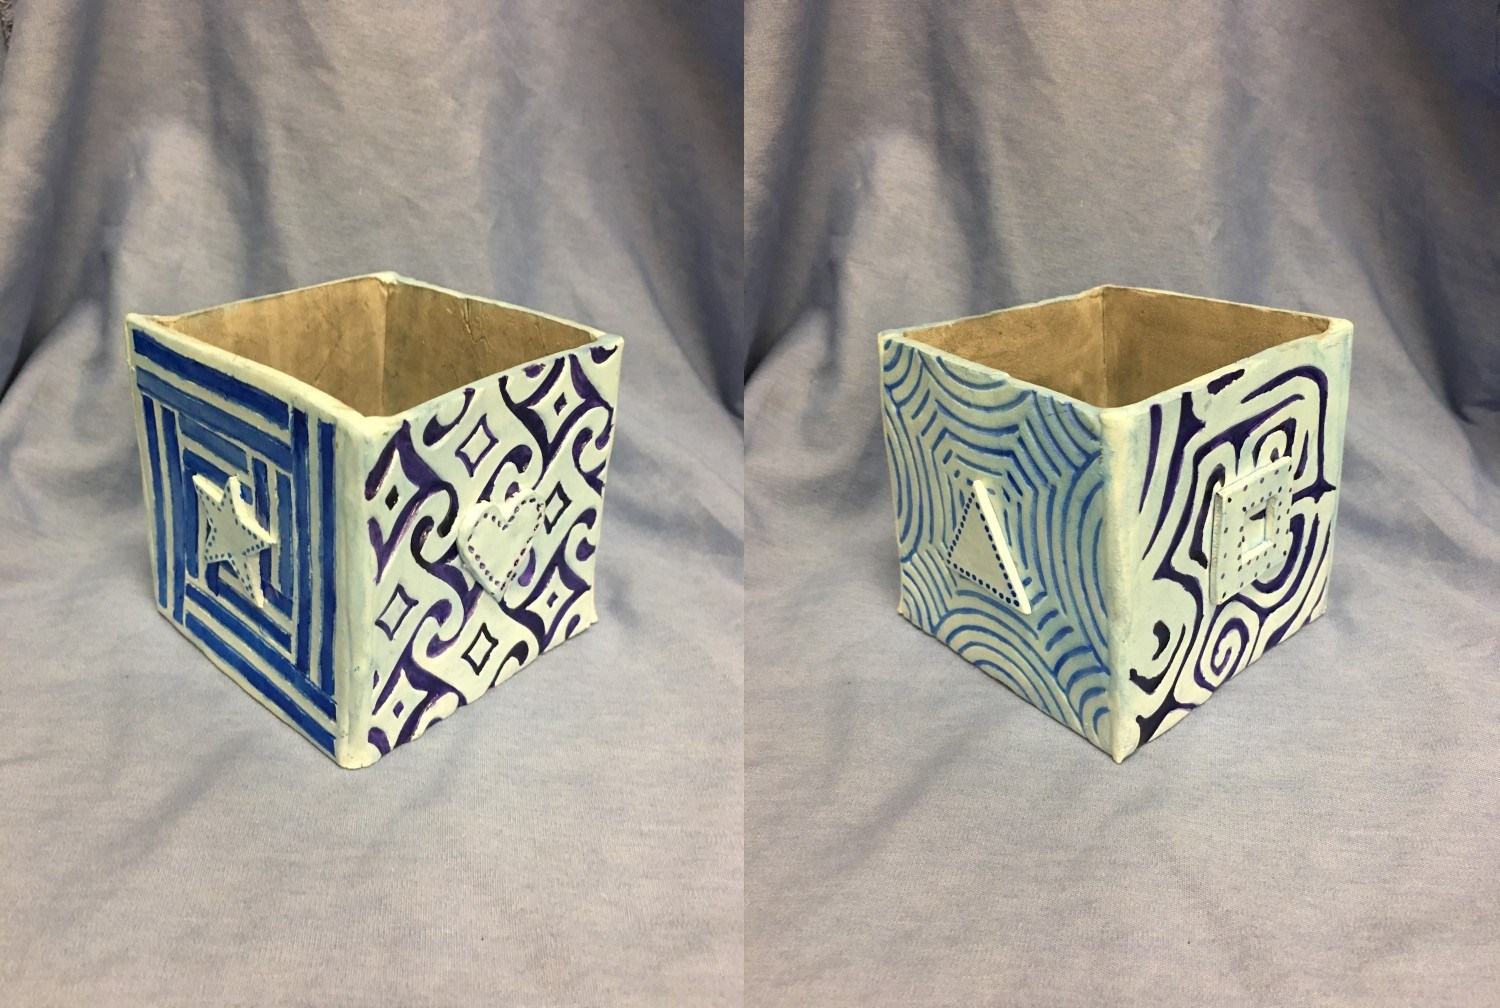 Clay box with designs painted in blue and white